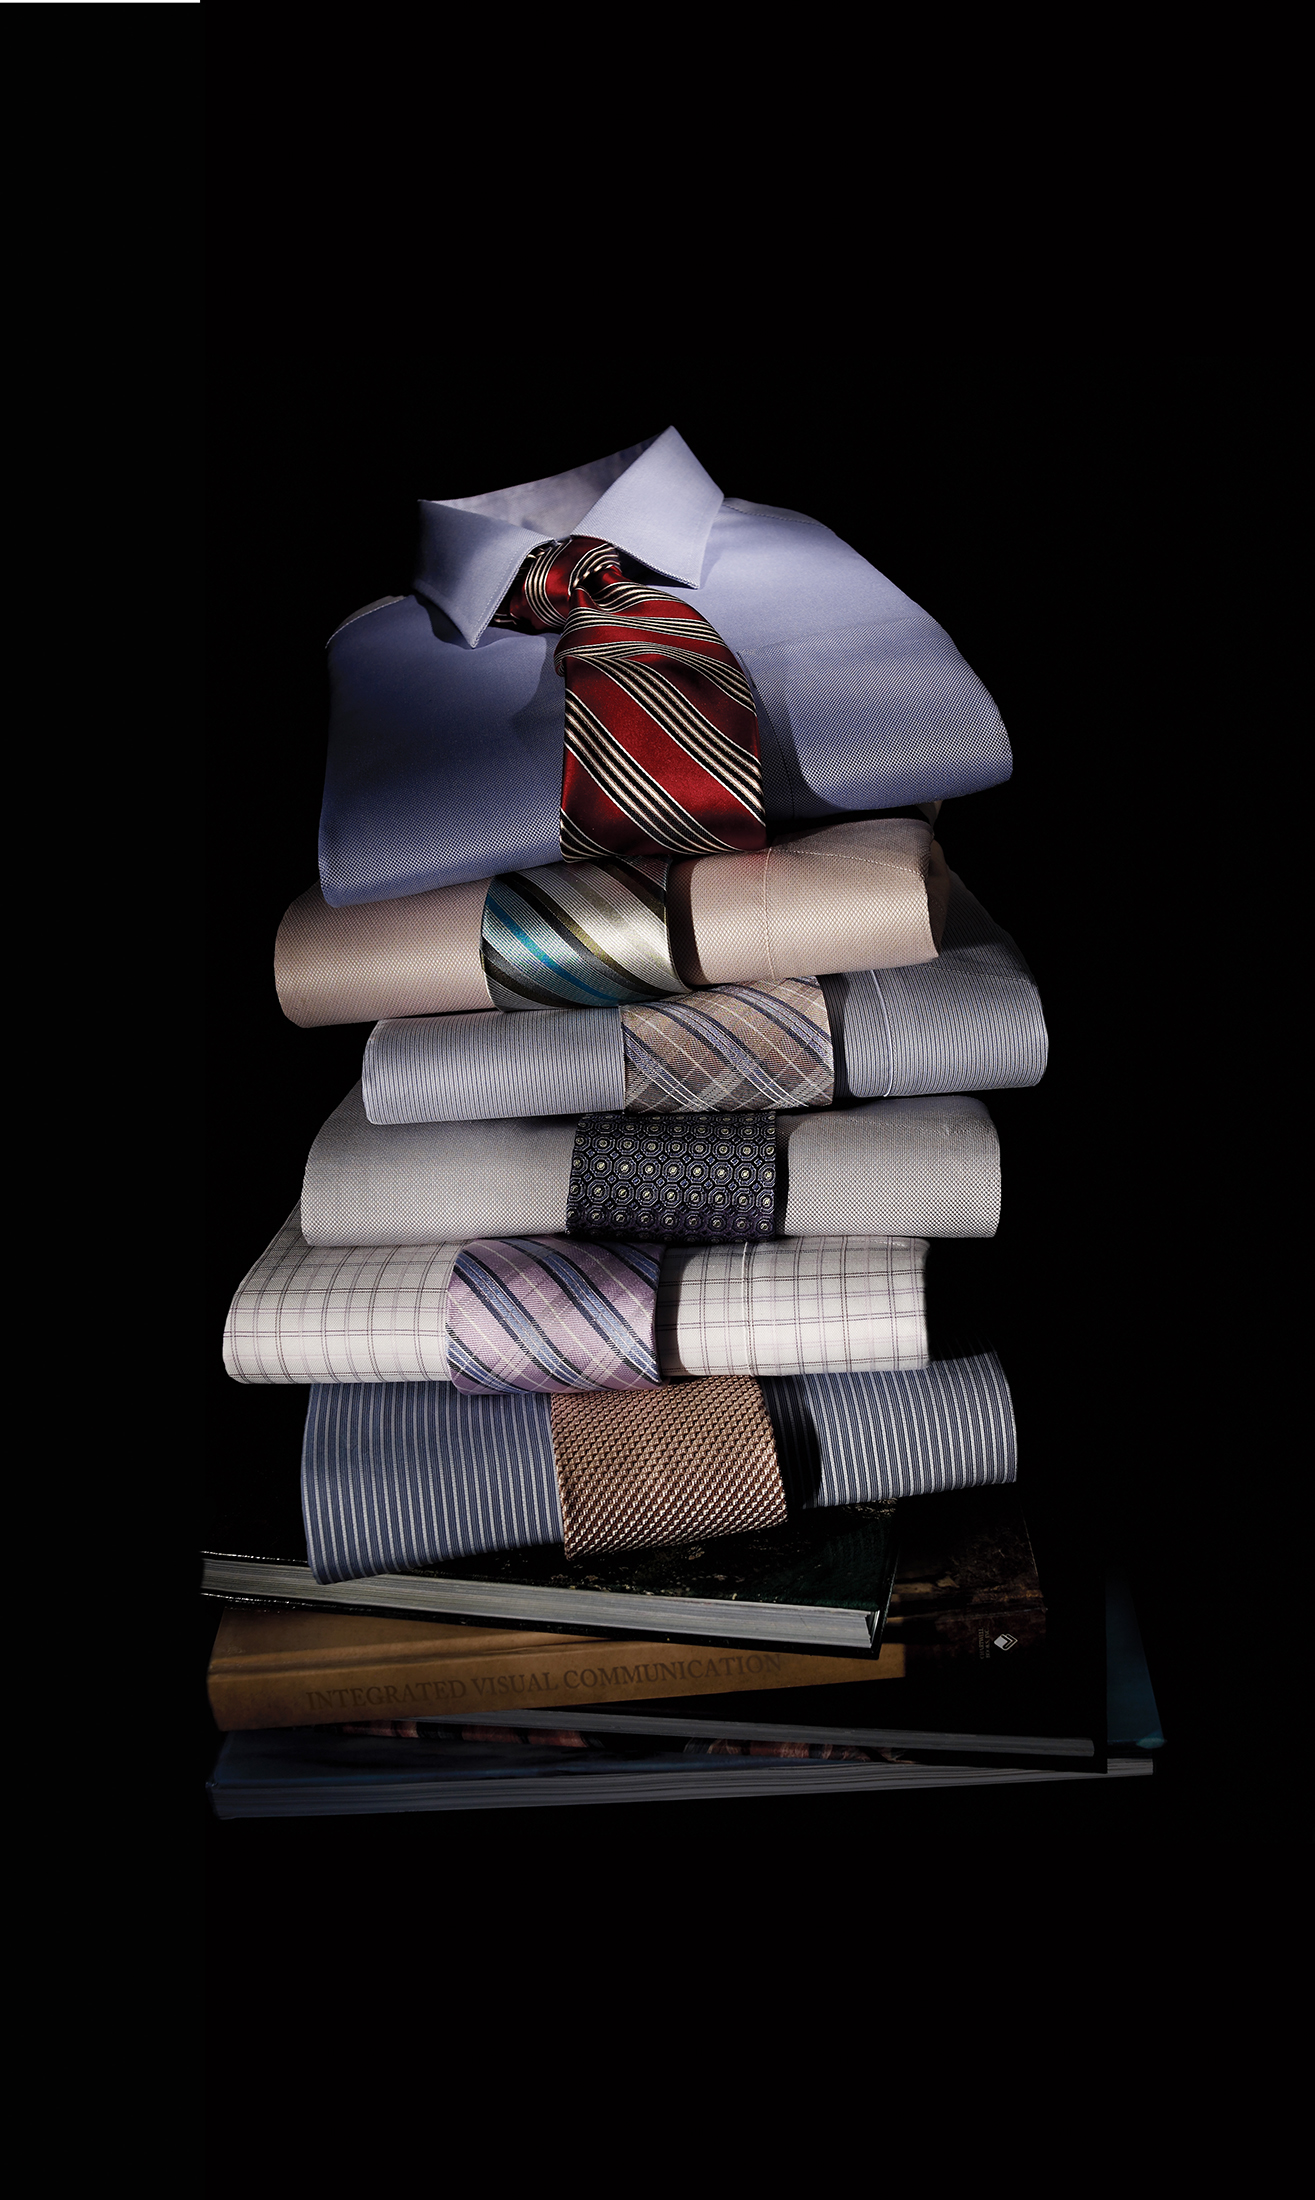 Photography - Pile of Folded Men's Dress Shirts and Ties